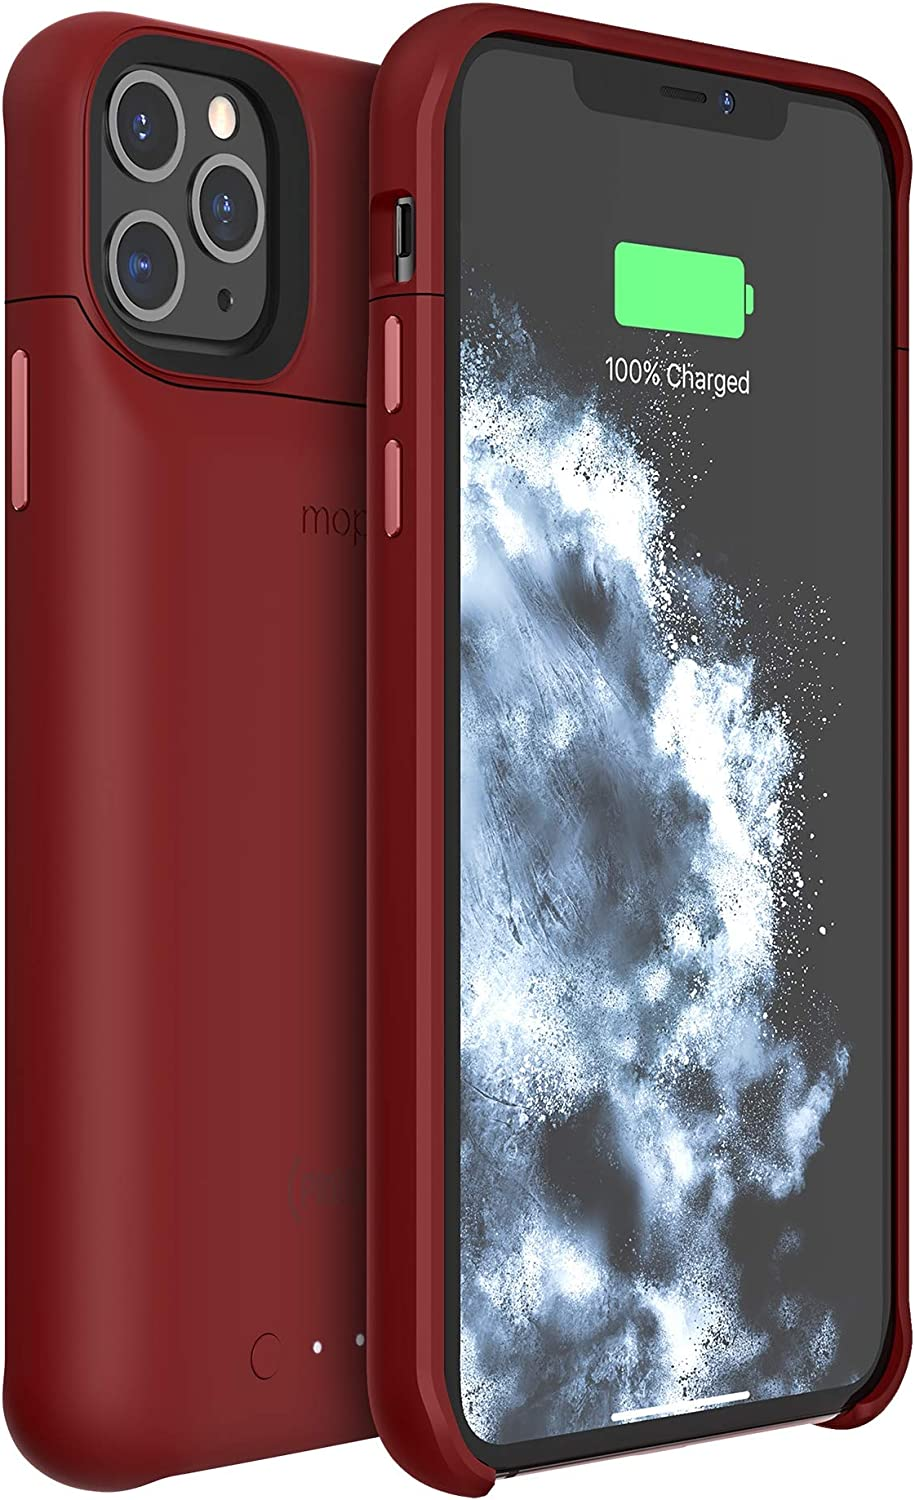 Mophie 401004408 Juice Pack Access - Ultra-Slim Wireless Charging Battery Case - Made for Apple iPhone 11 Pro Max - Product(Red)